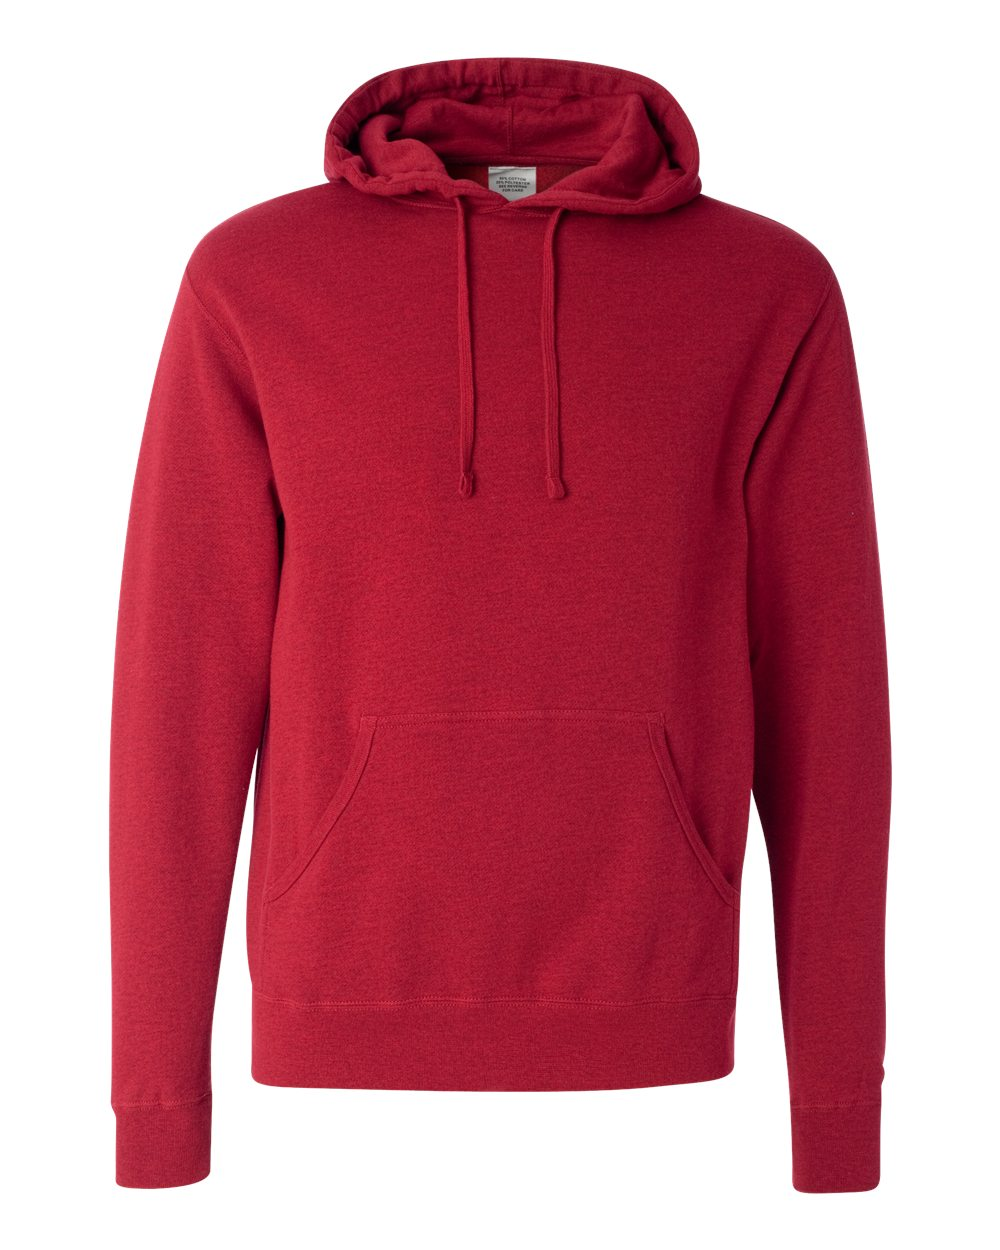 Independent_Trading_Co._AFX4000_Red_Heather_Front_High.jpg